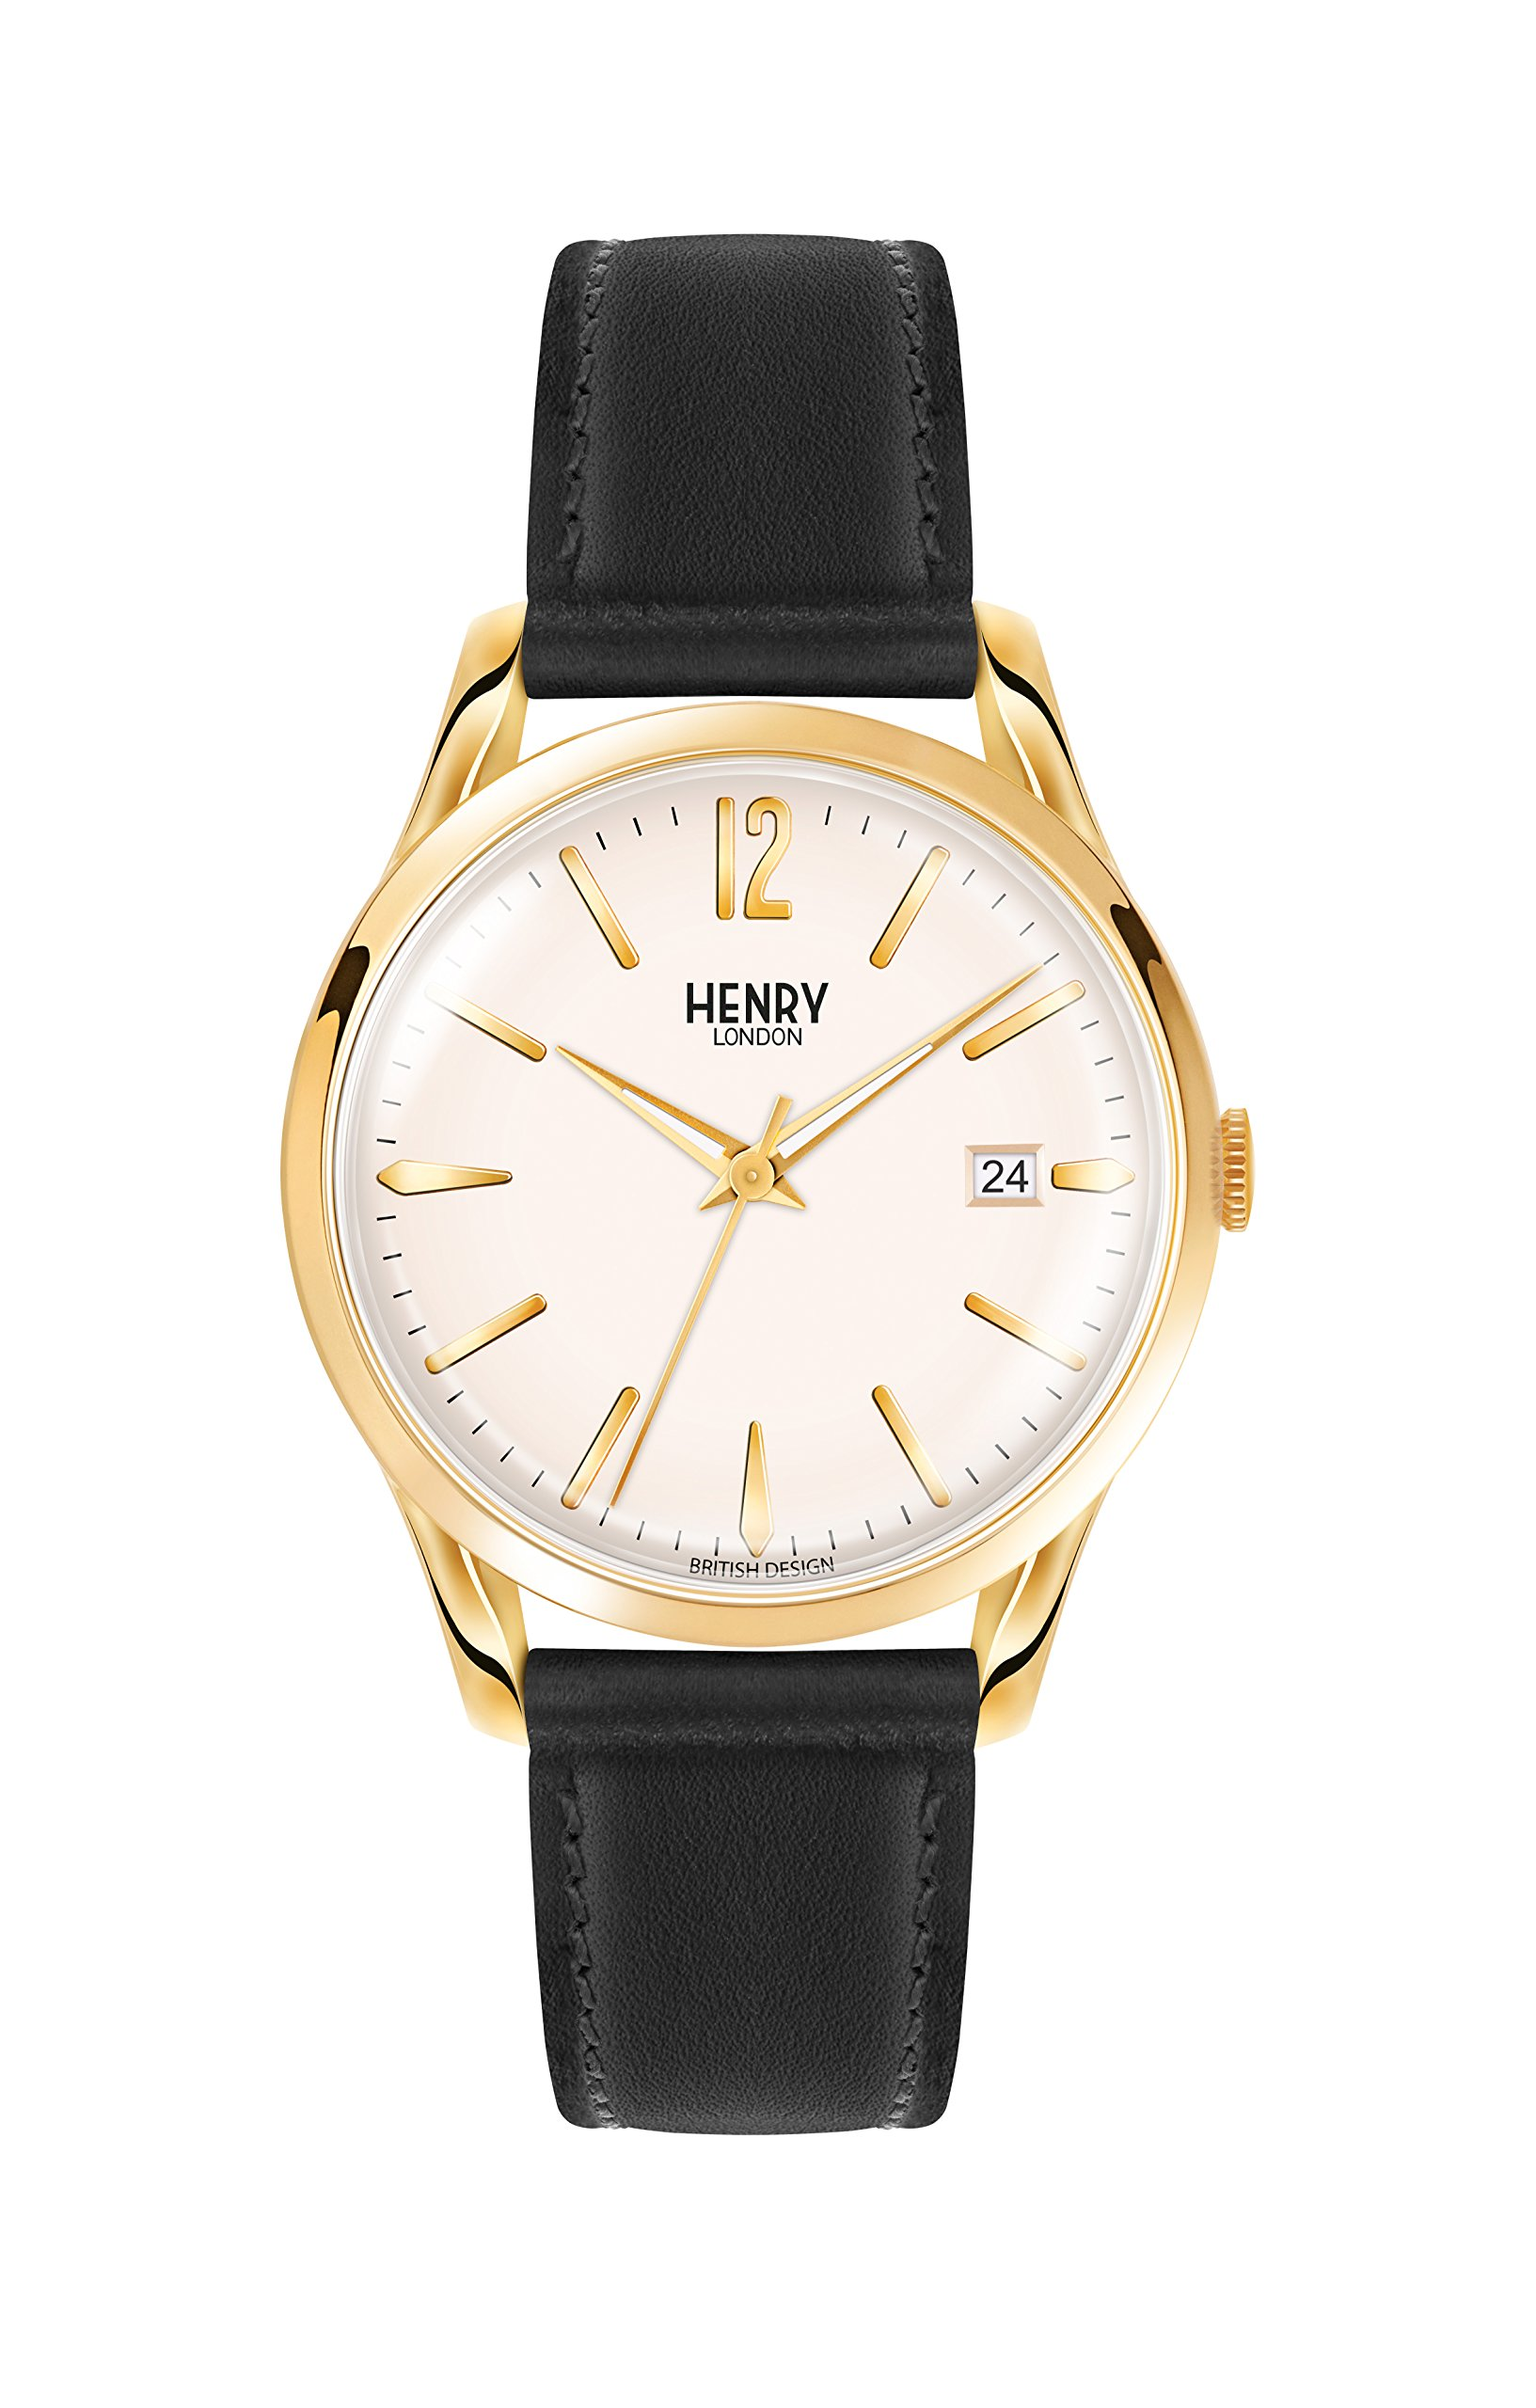 Henry Westminster London Unisex Bracelet Watch Analogue Quartz Leather (HL39)